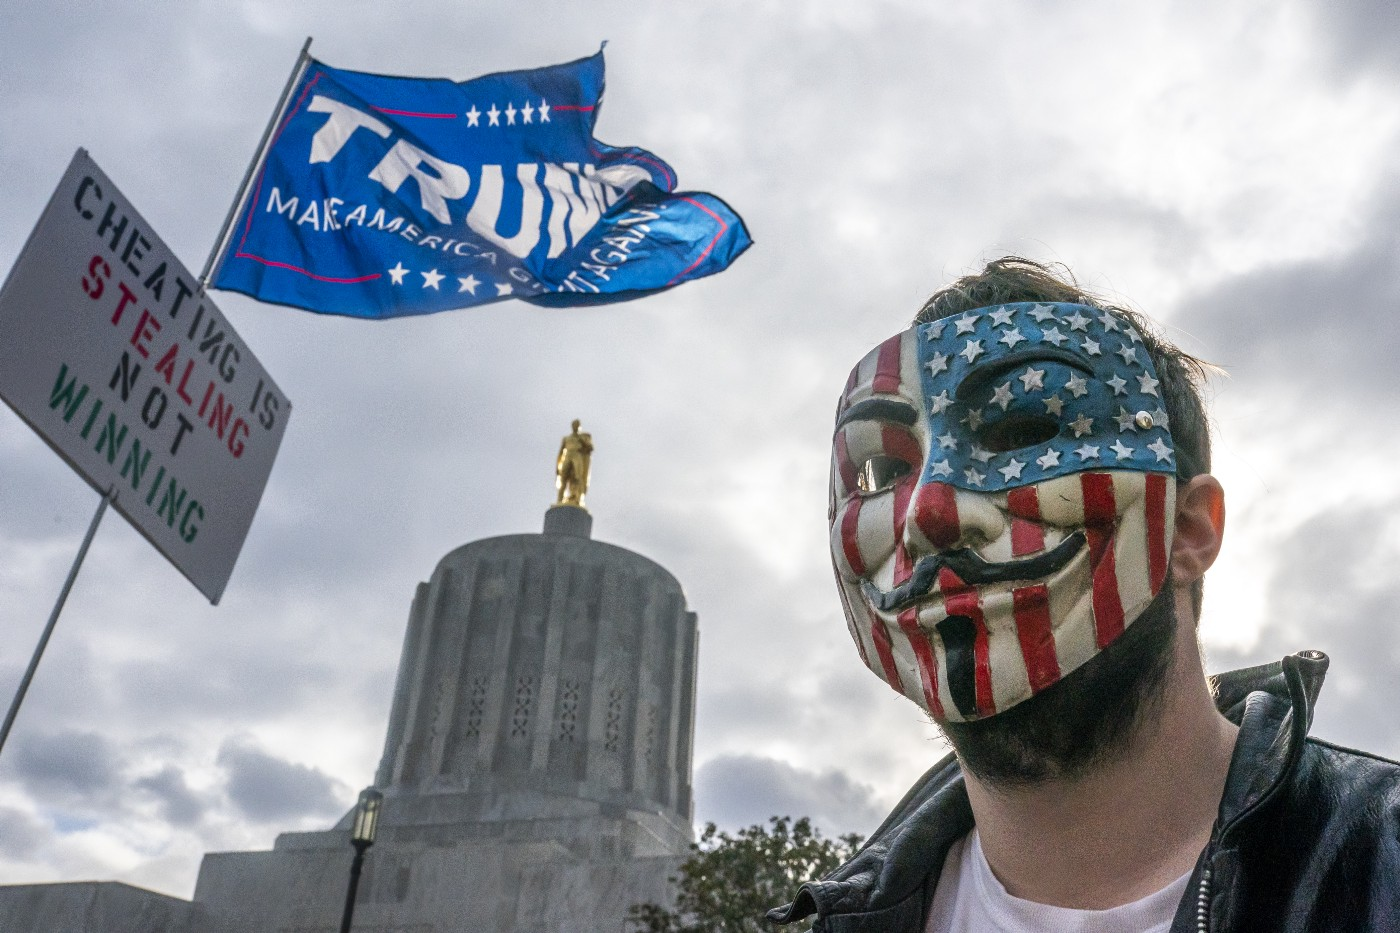 A protester in a Guy Fawkes mask stands in front of the Oregon State Capitol building during a Stop the Steal rally on Nov. 7